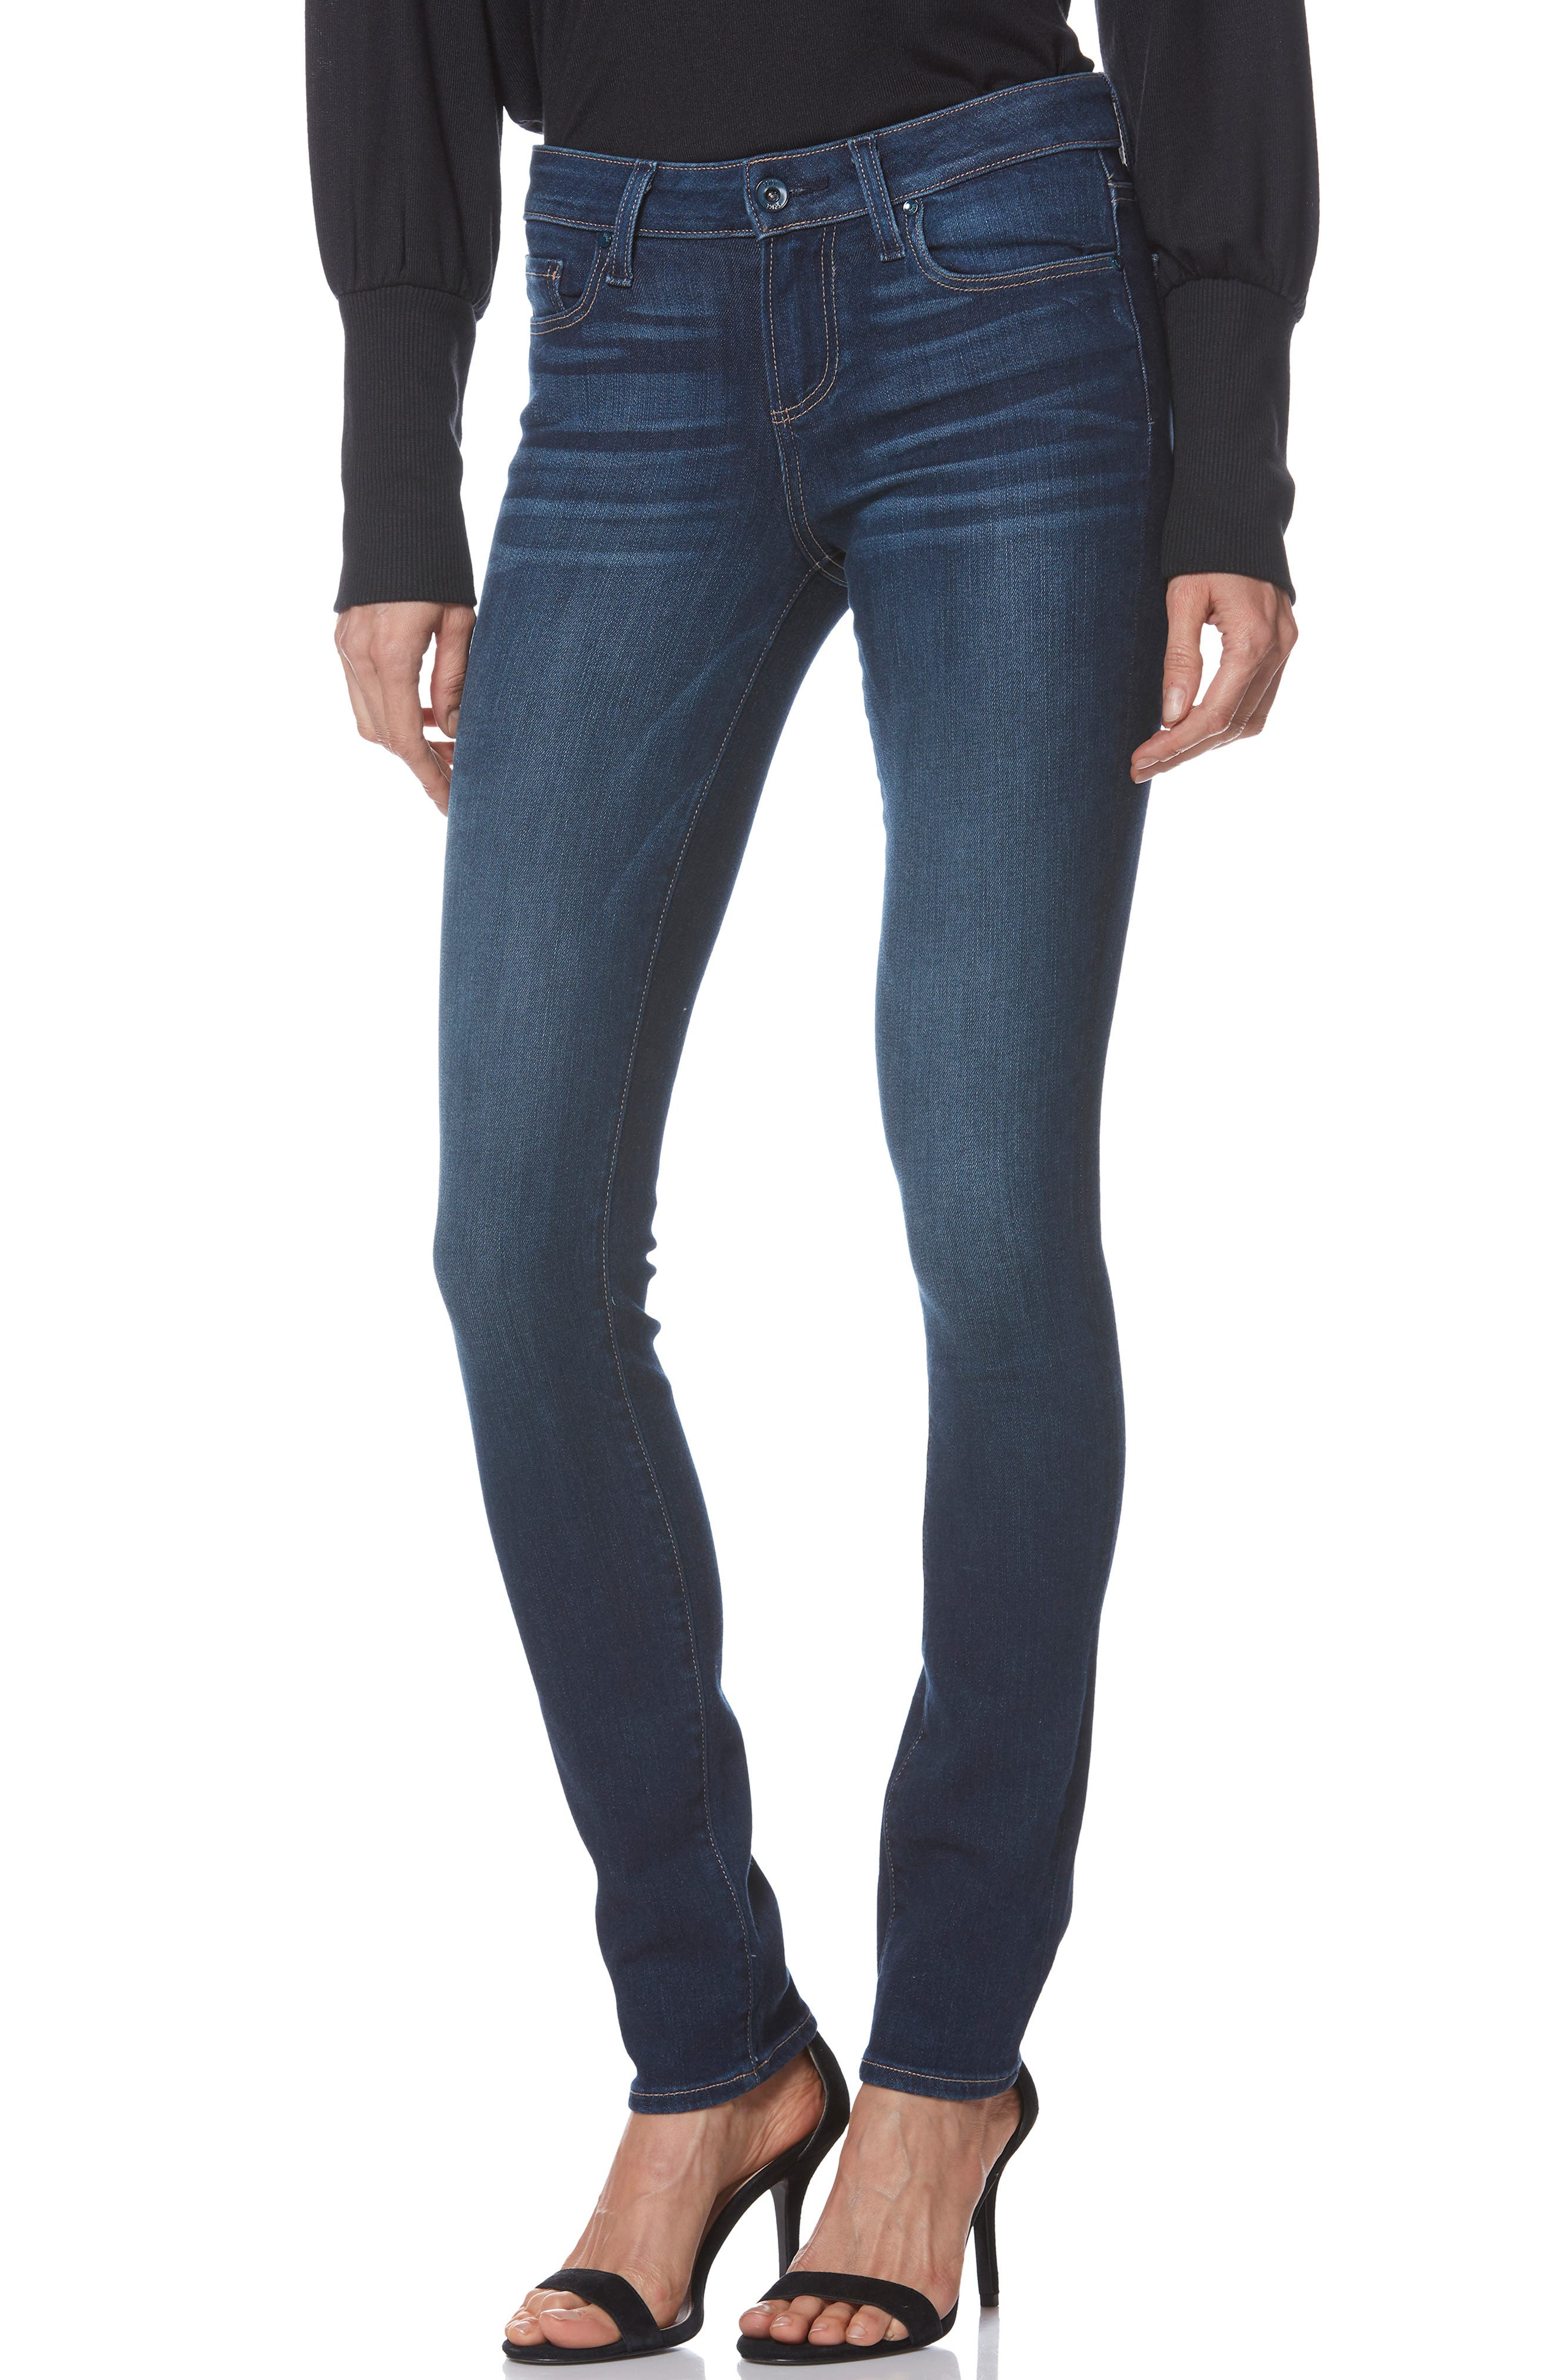 PAIGE Skyline Skinny Jeans, Main, color, IDLEWILD